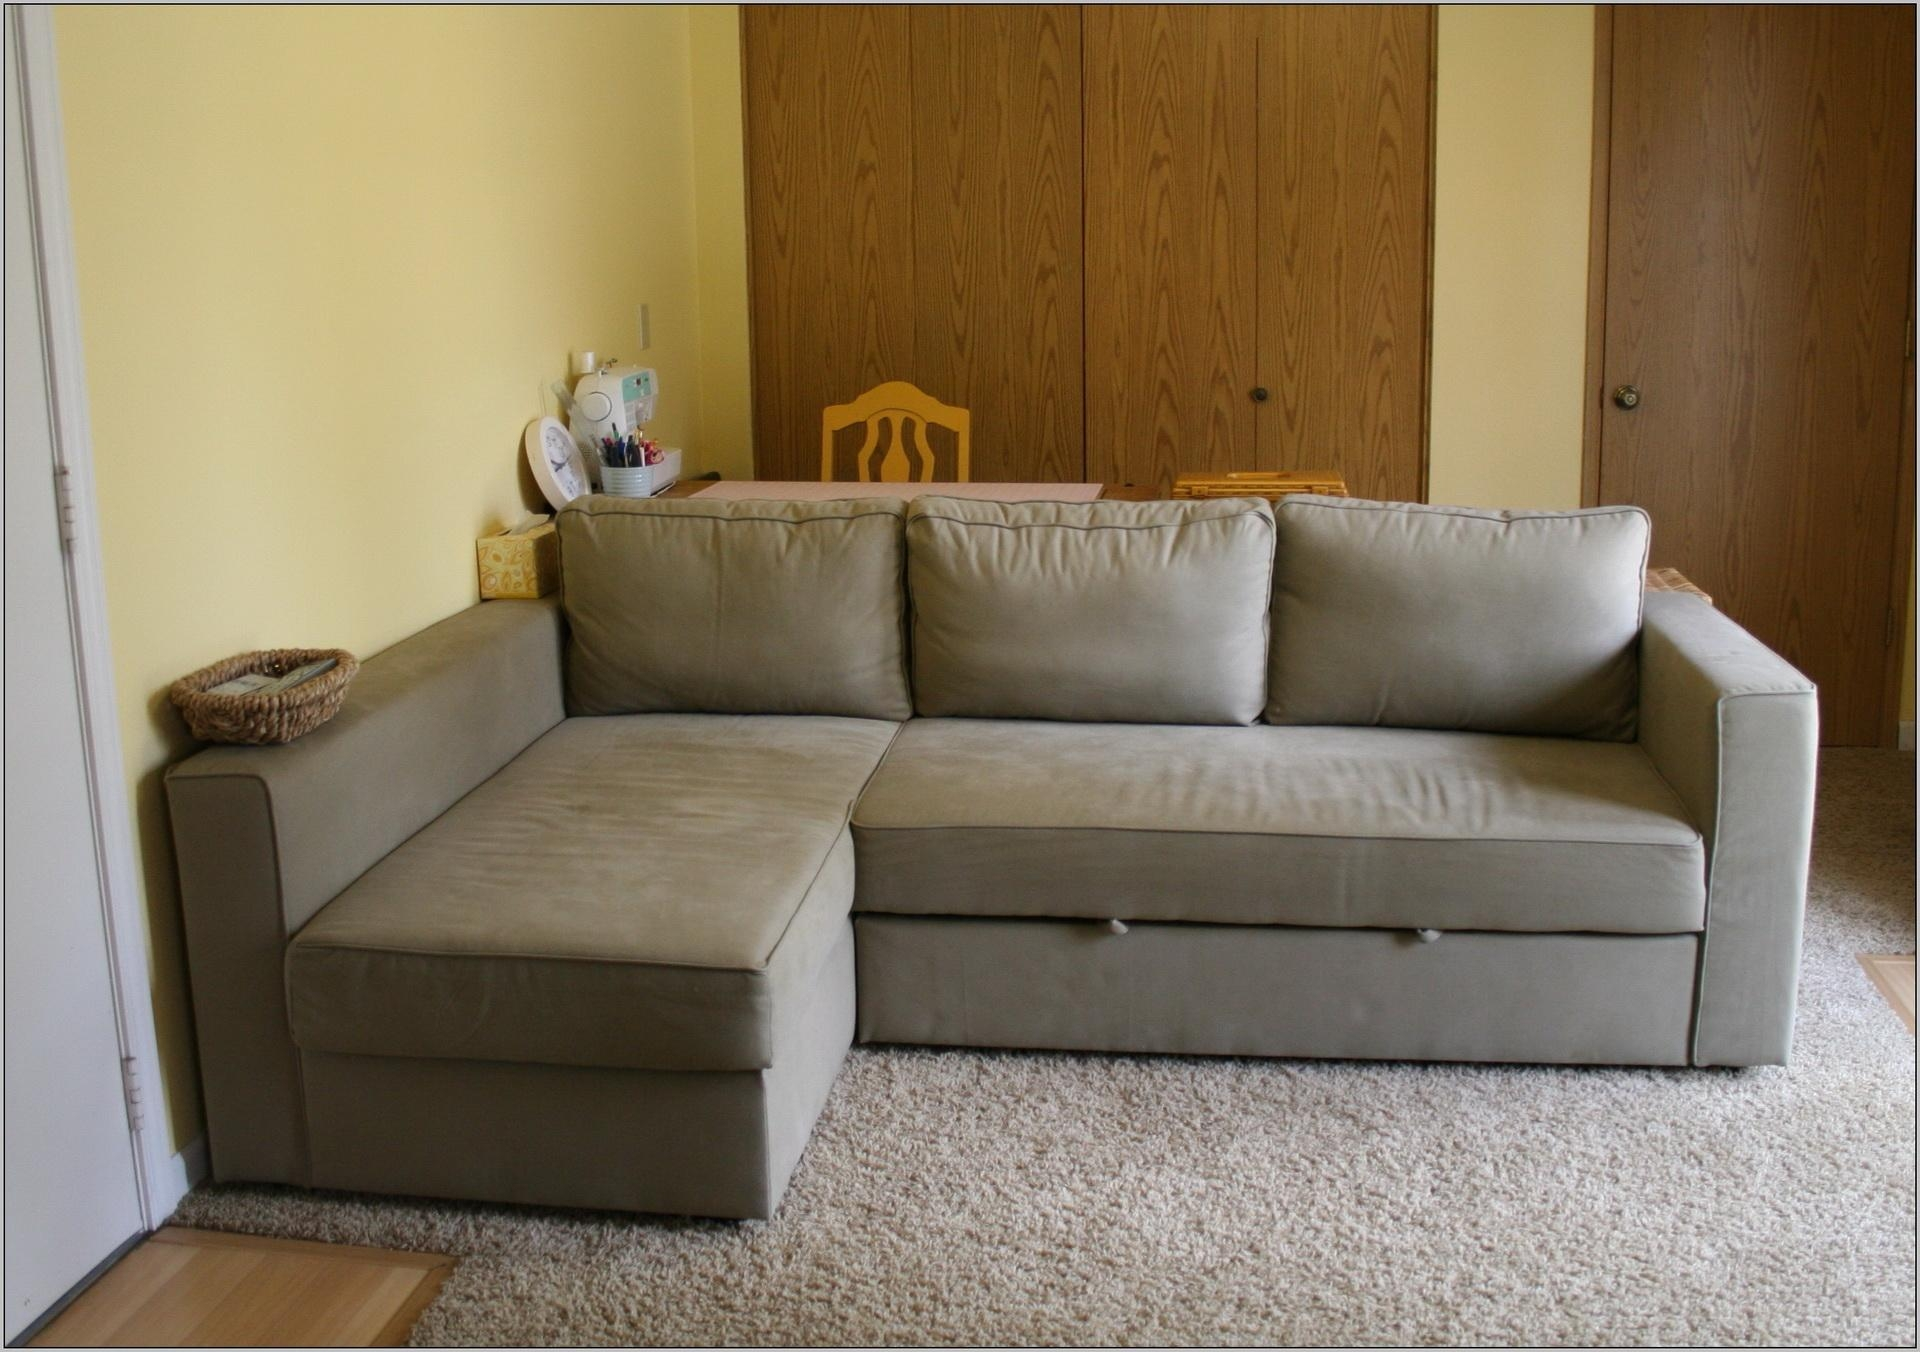 Furniture: Ikea Sleeper Sofa With Different Styles And Fabrics To Pertaining To Sleeper Sectional Sofa Ikea (View 4 of 20)